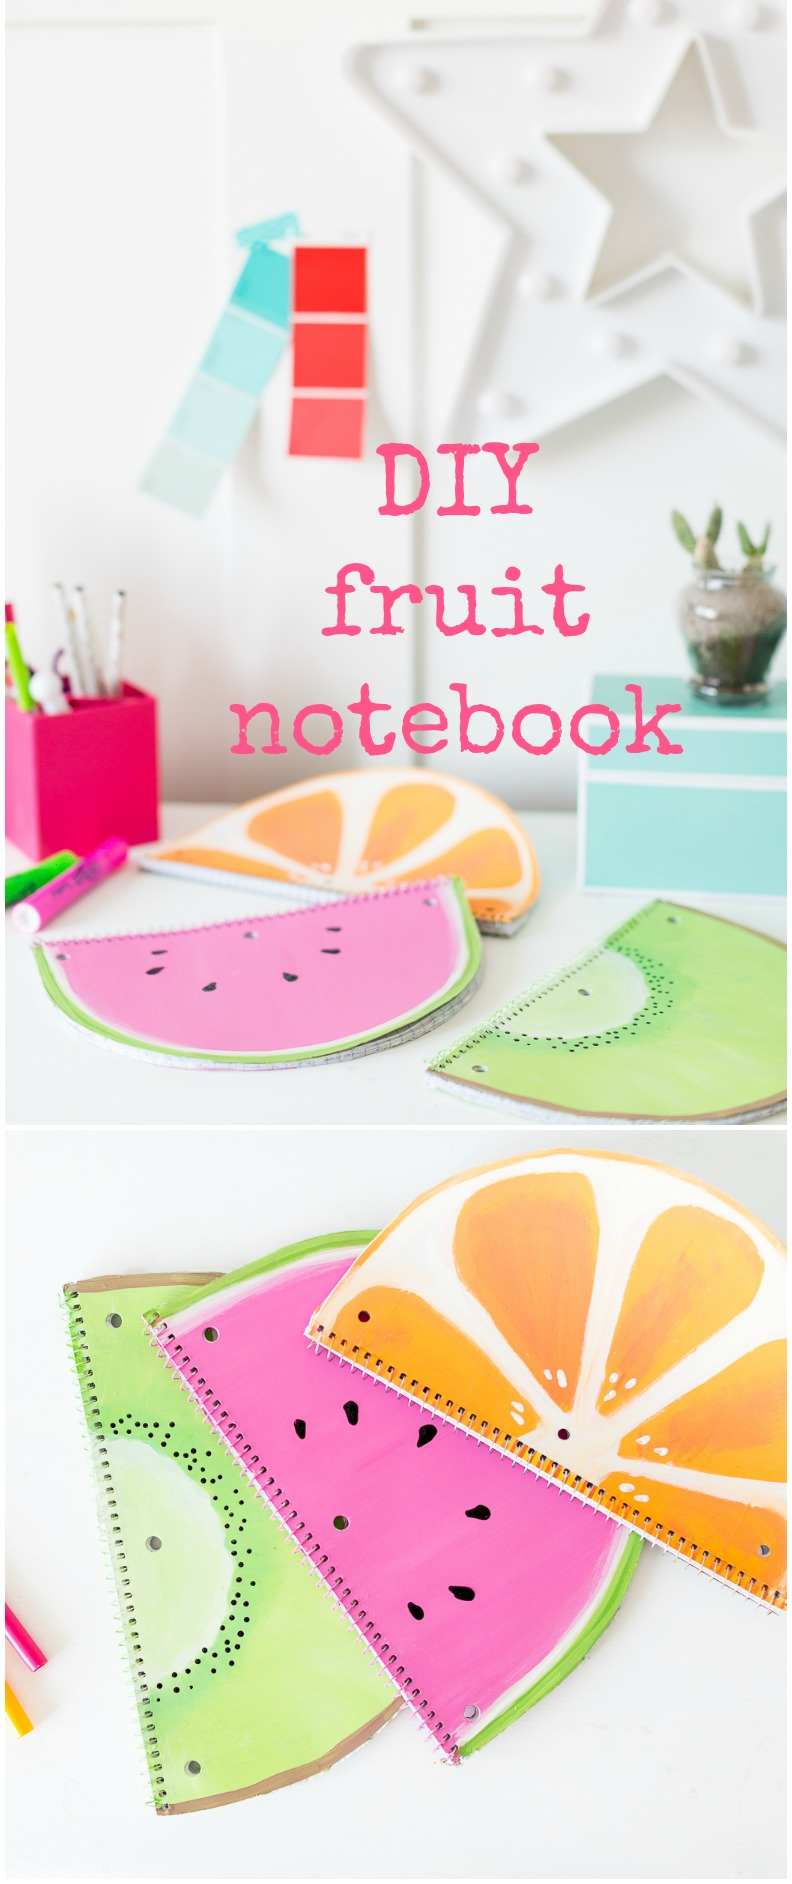 fruitnotebookdiycollage